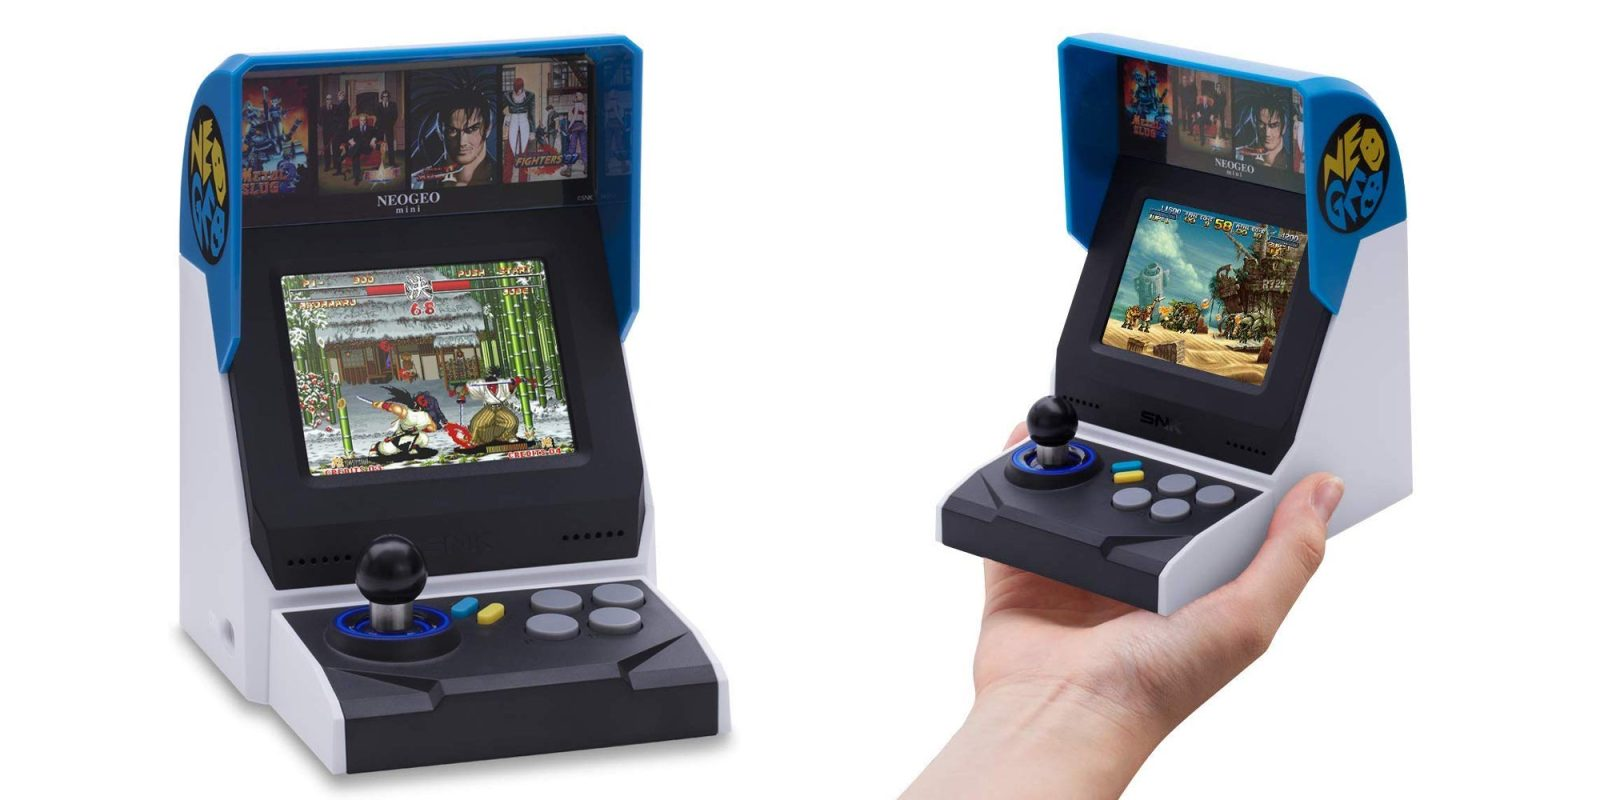 NEOGEO Mini Console gets $30 price cut to one of its best prices yet at $60